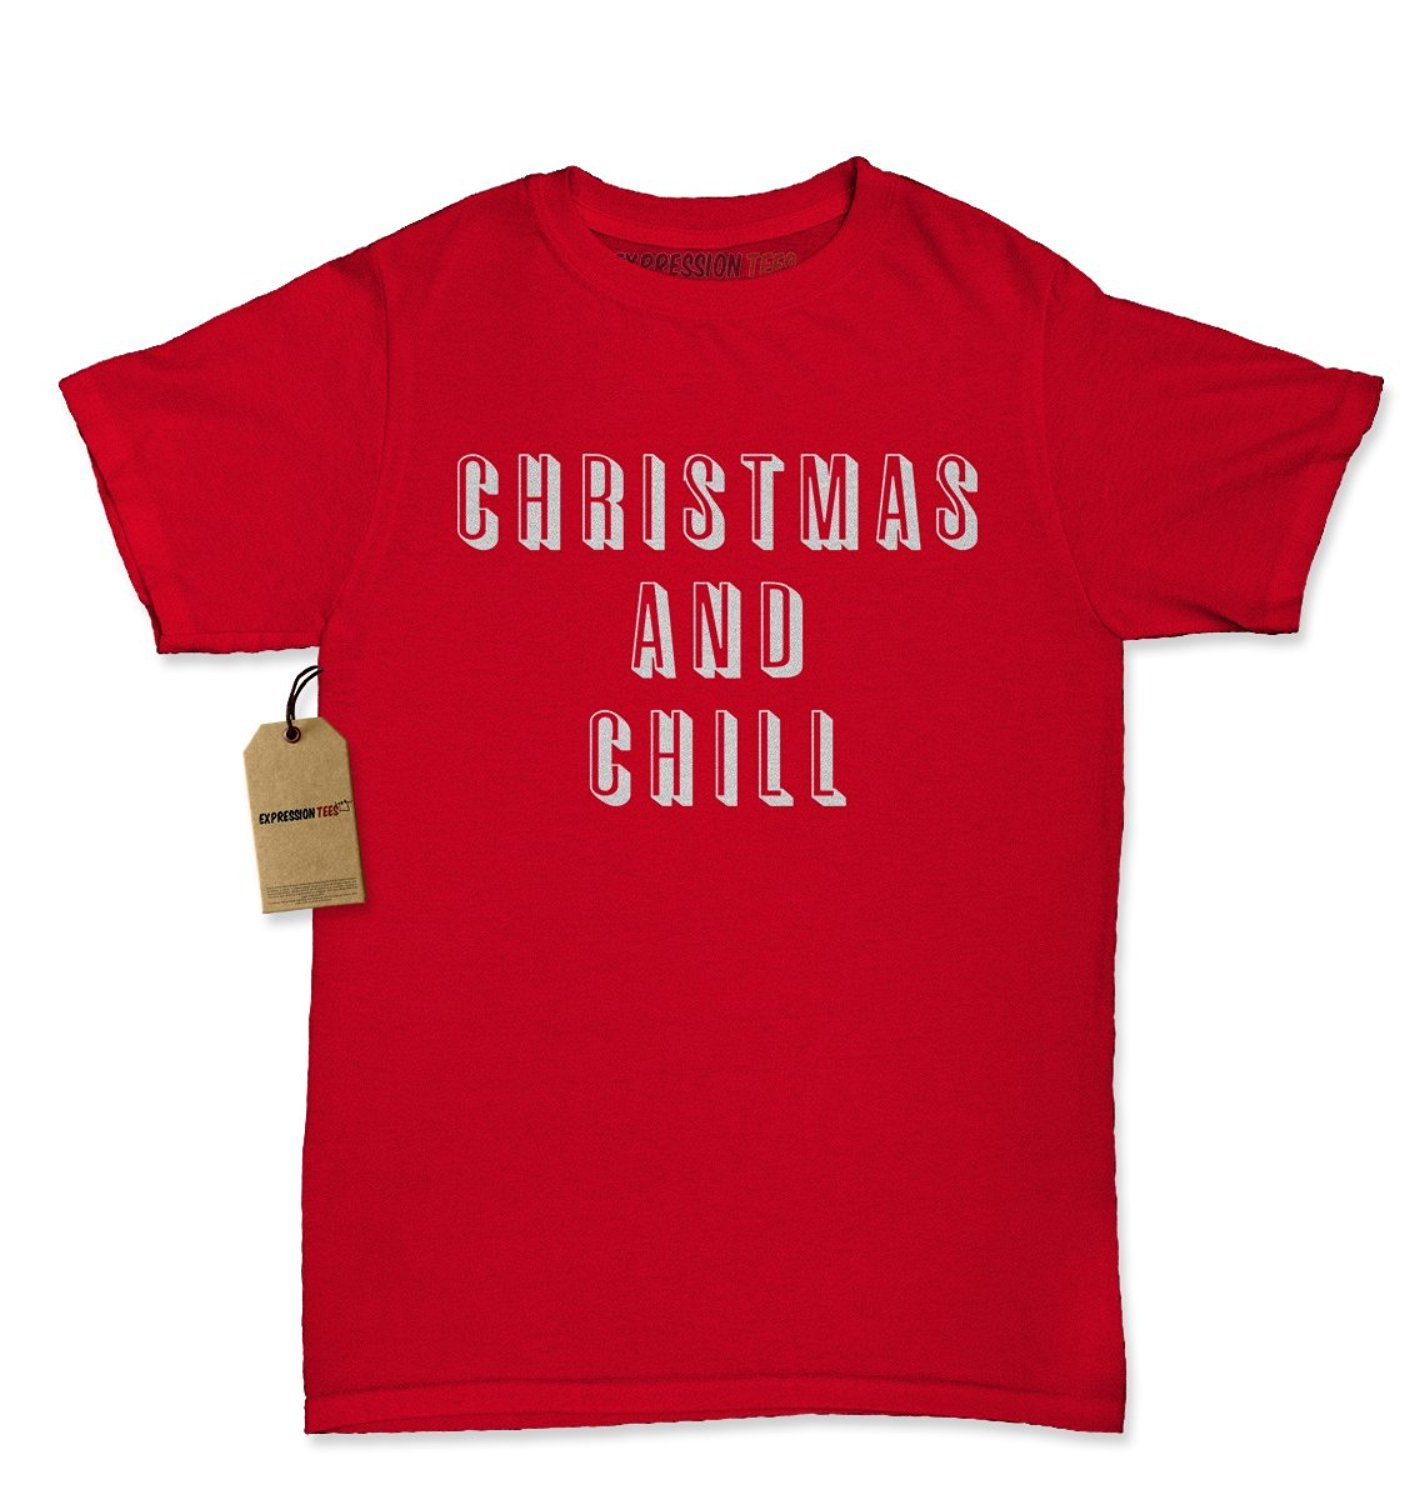 Expression Tees Christmas And Chill Womens